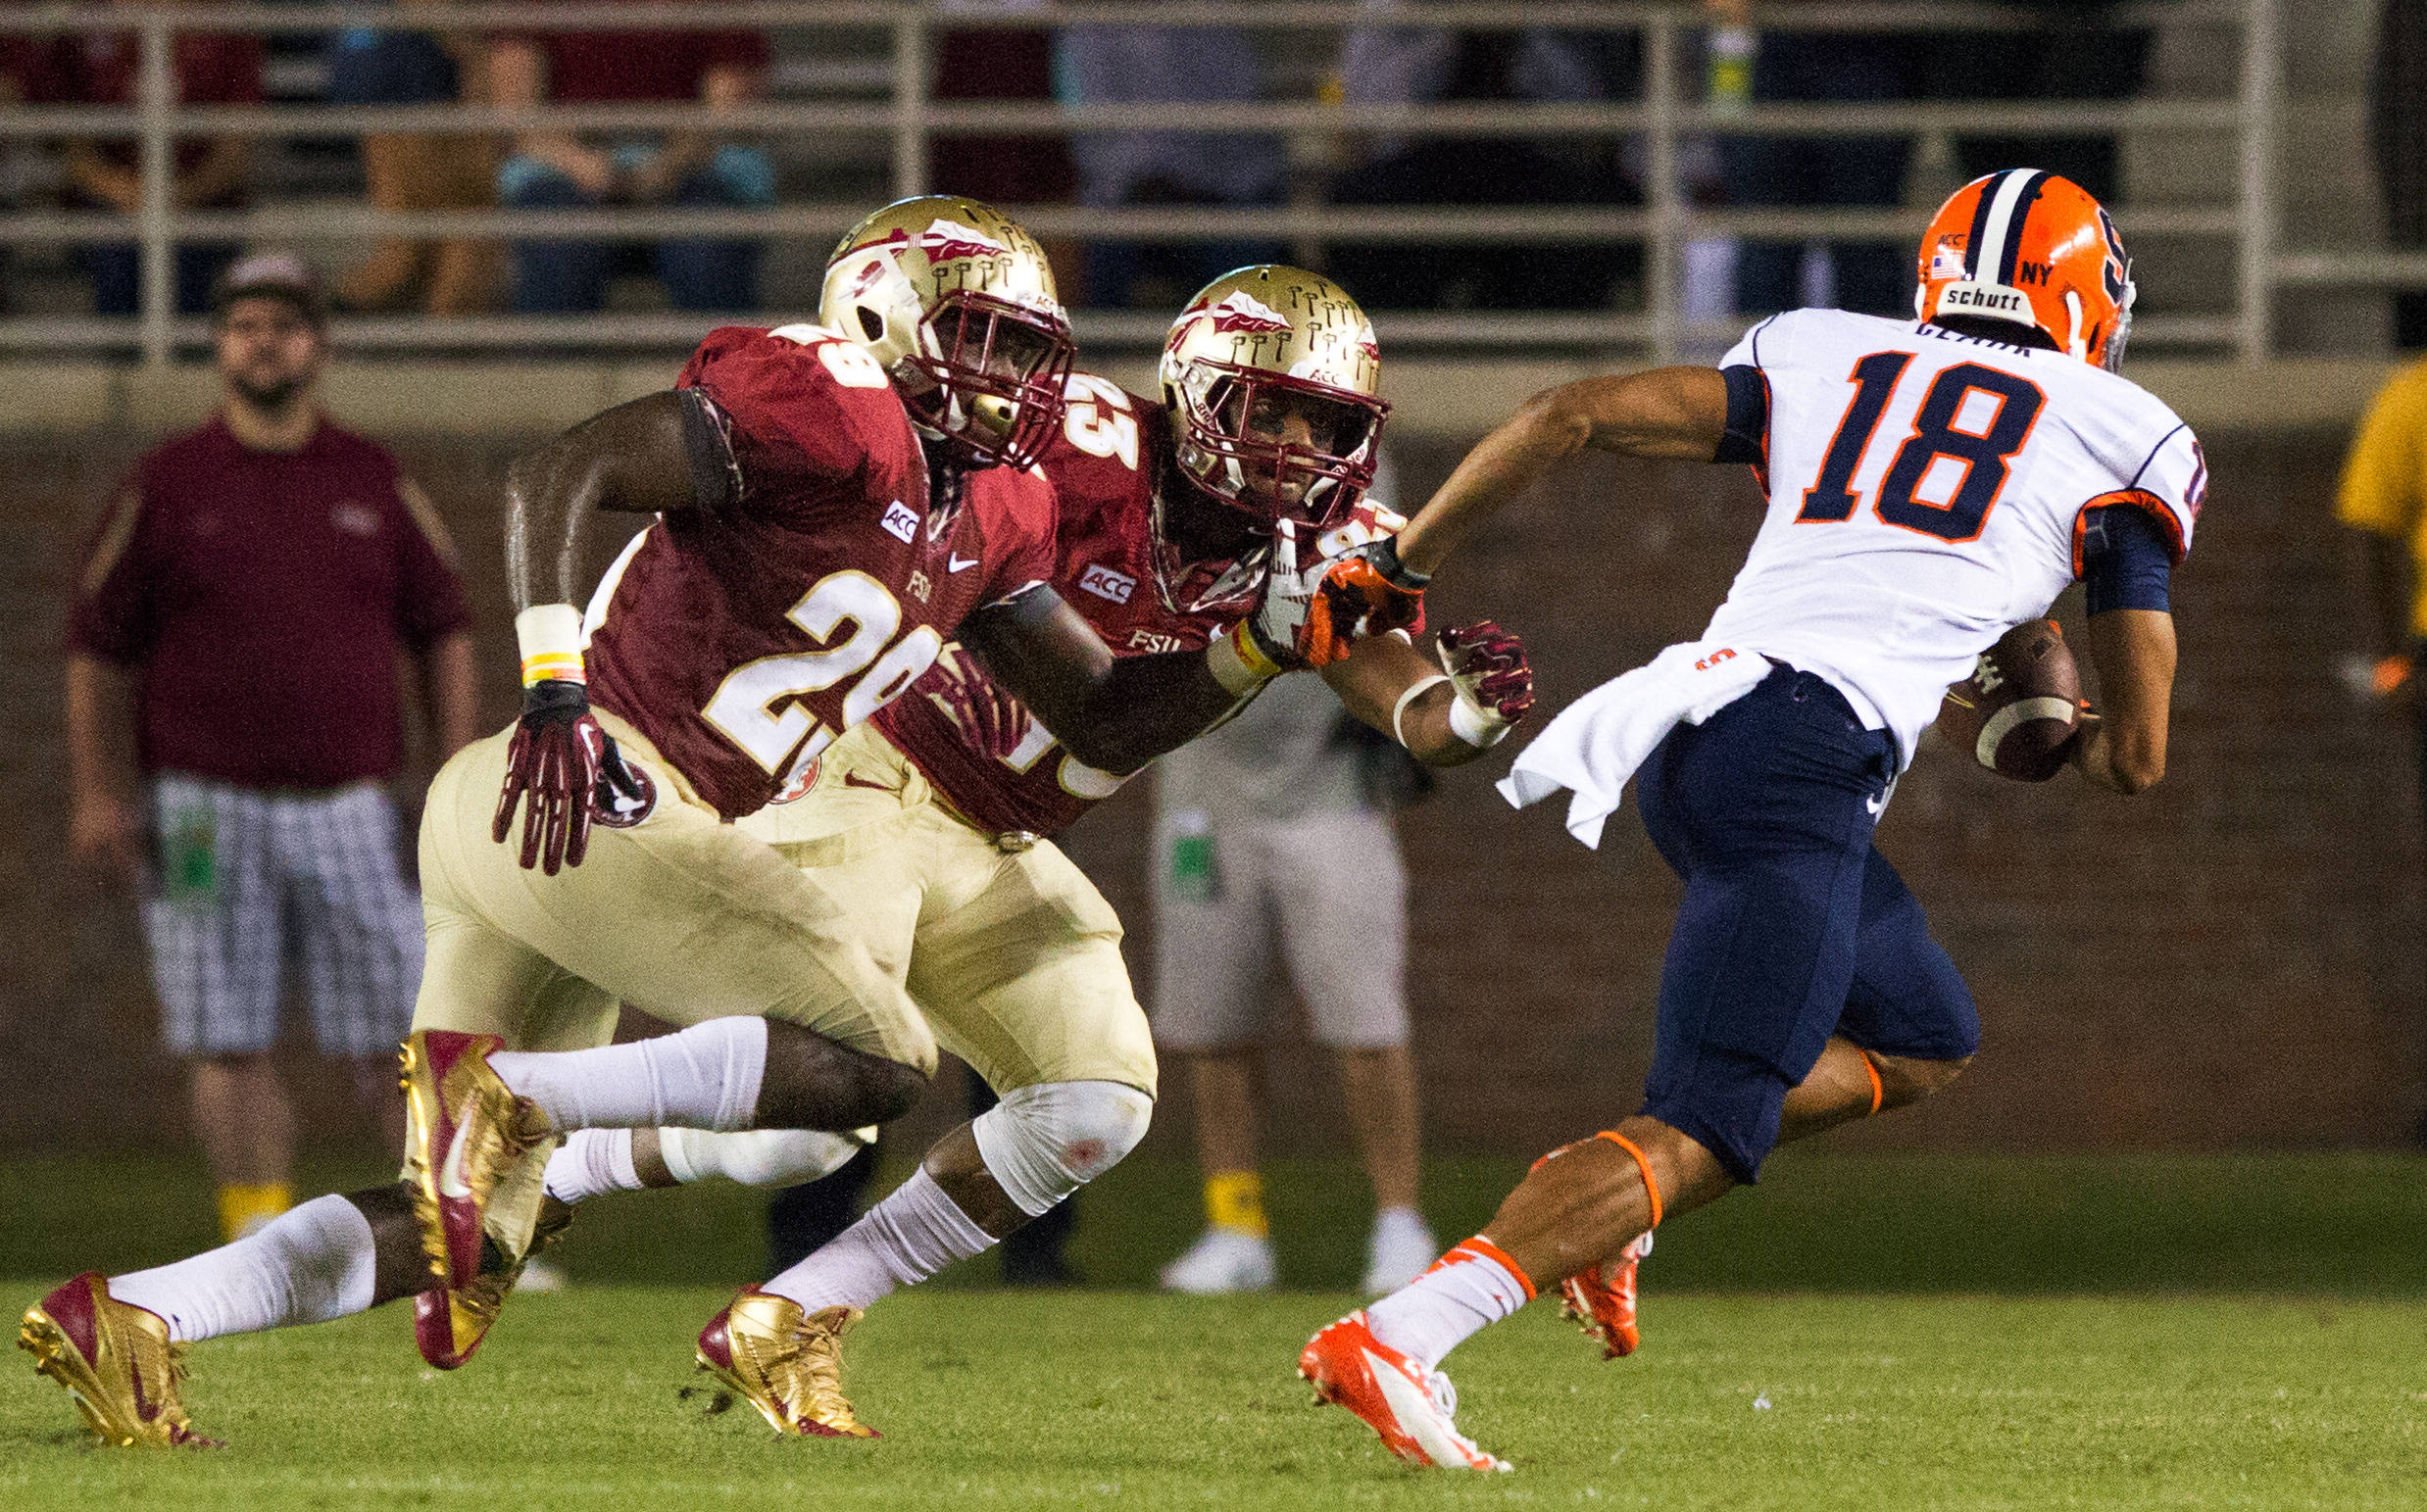 Nate Andrews (29) and Gerald Demps (23) take down a Syracuse ball carrier during FSU Football's 59-3 win over Syracuse on Saturday, November 16, 2013 in Tallahassee, Fla. Photo by Mike Schwarz.